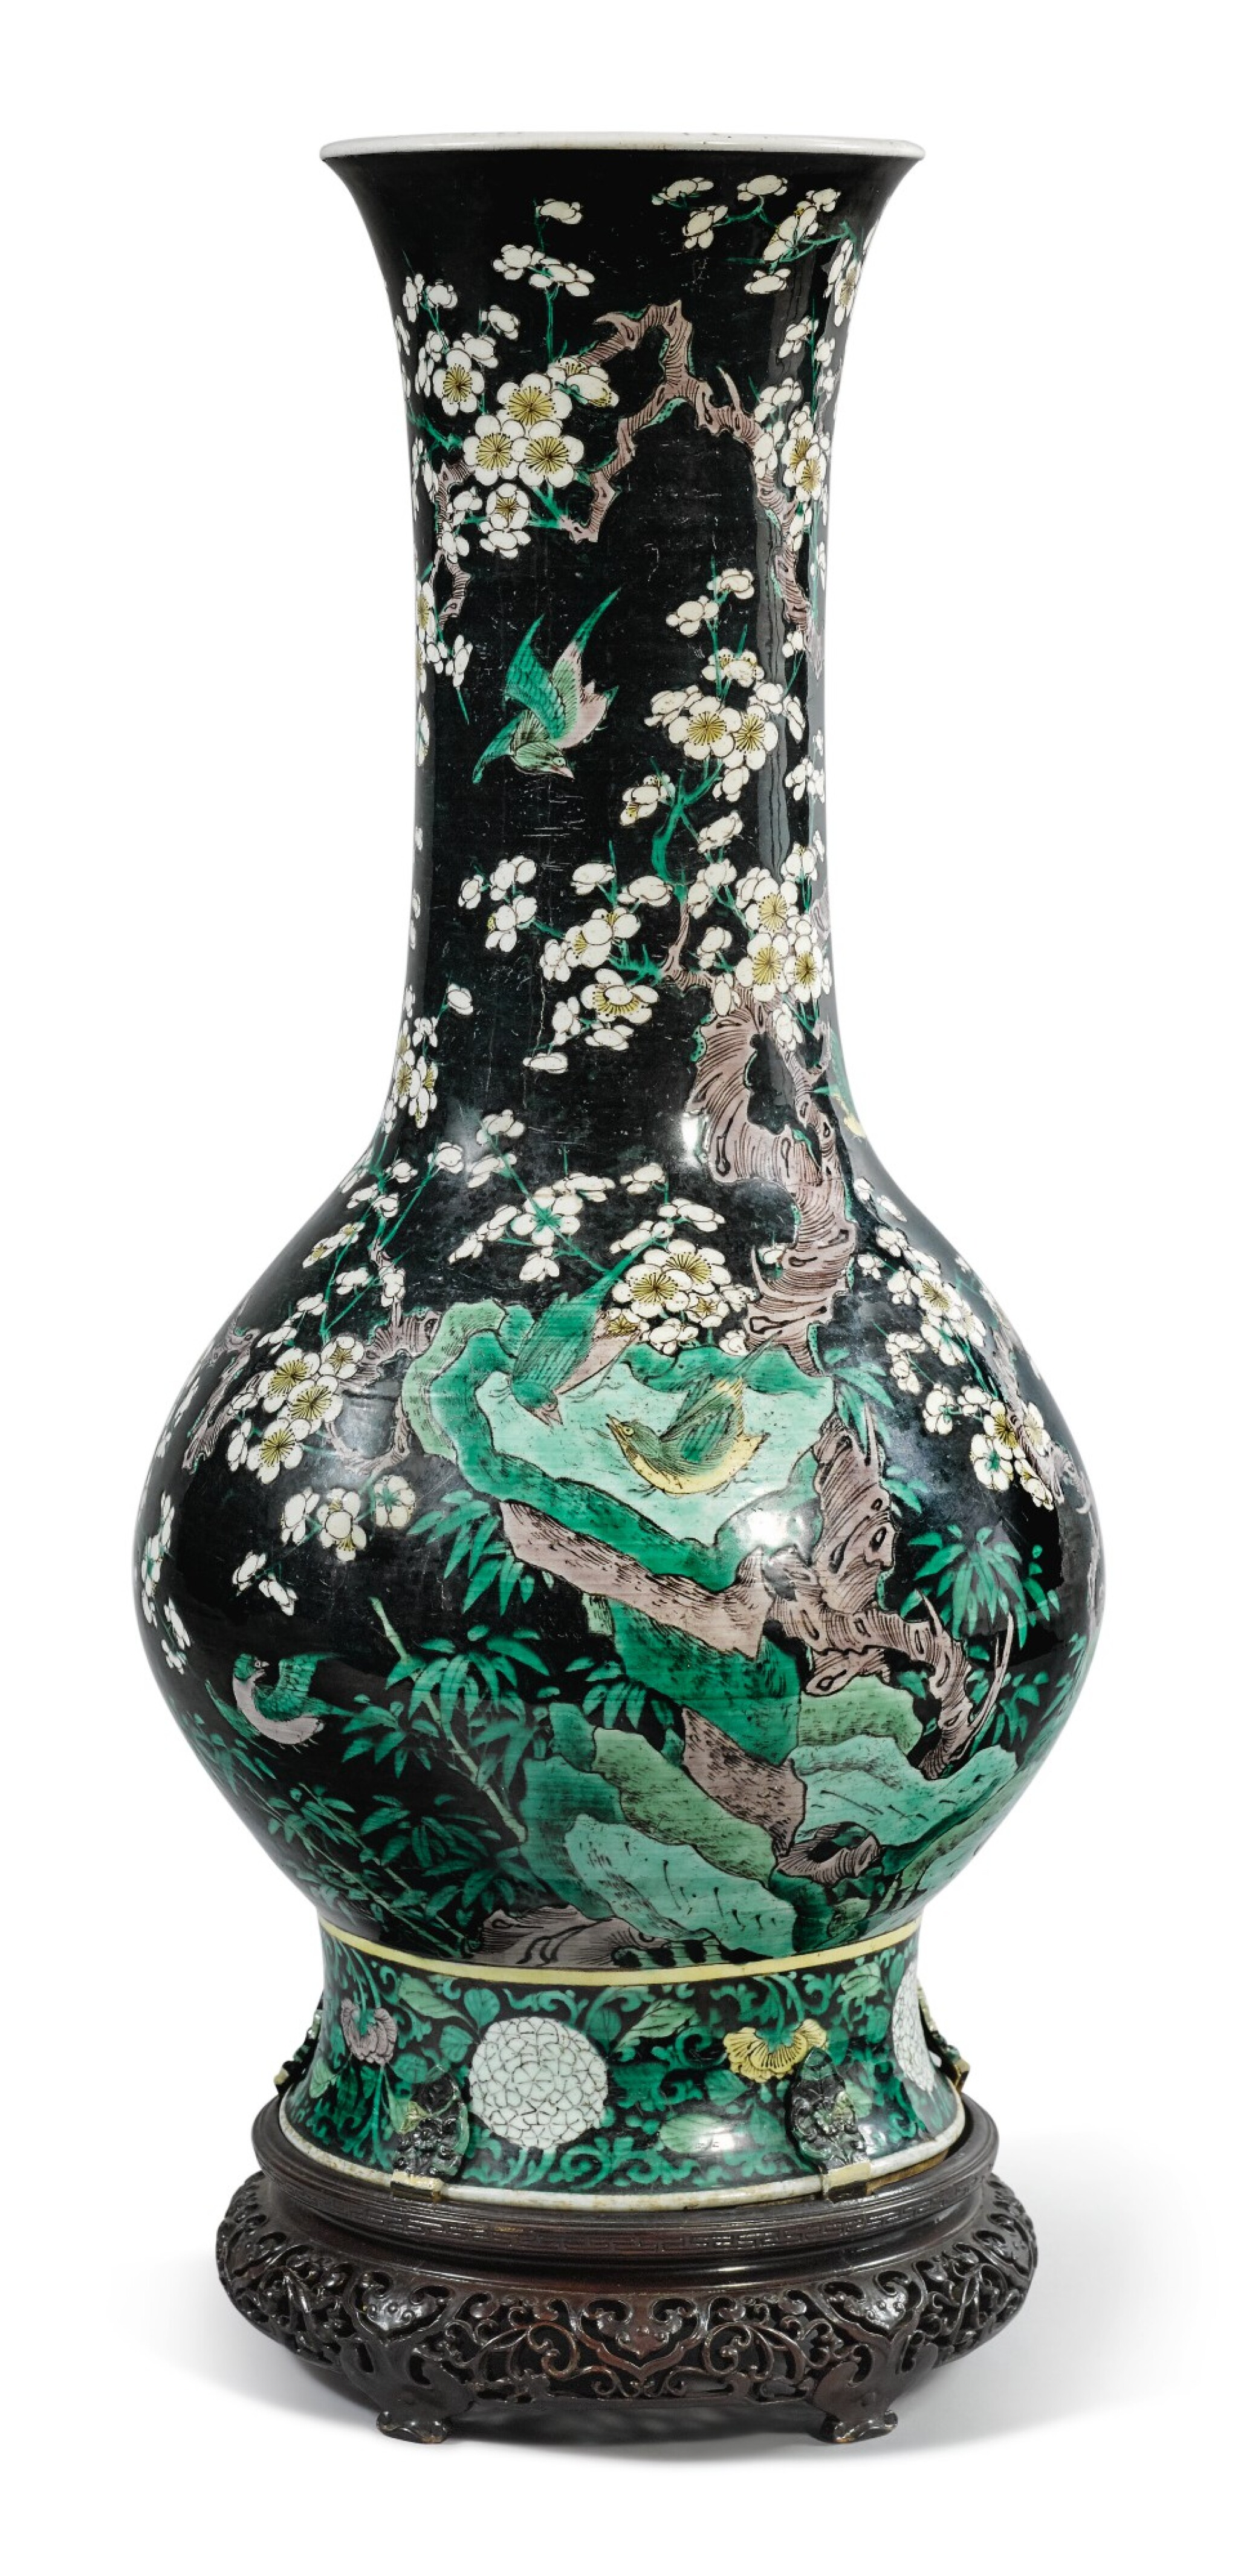 View 1 of Lot 1031. A FAMILLE-NOIRE 'BIRD AND FLOWER' PEAR-SHAPED VASE,  THE PORCELAIN 18TH CENTURY, THE ENAMELS LATER-ADDED.